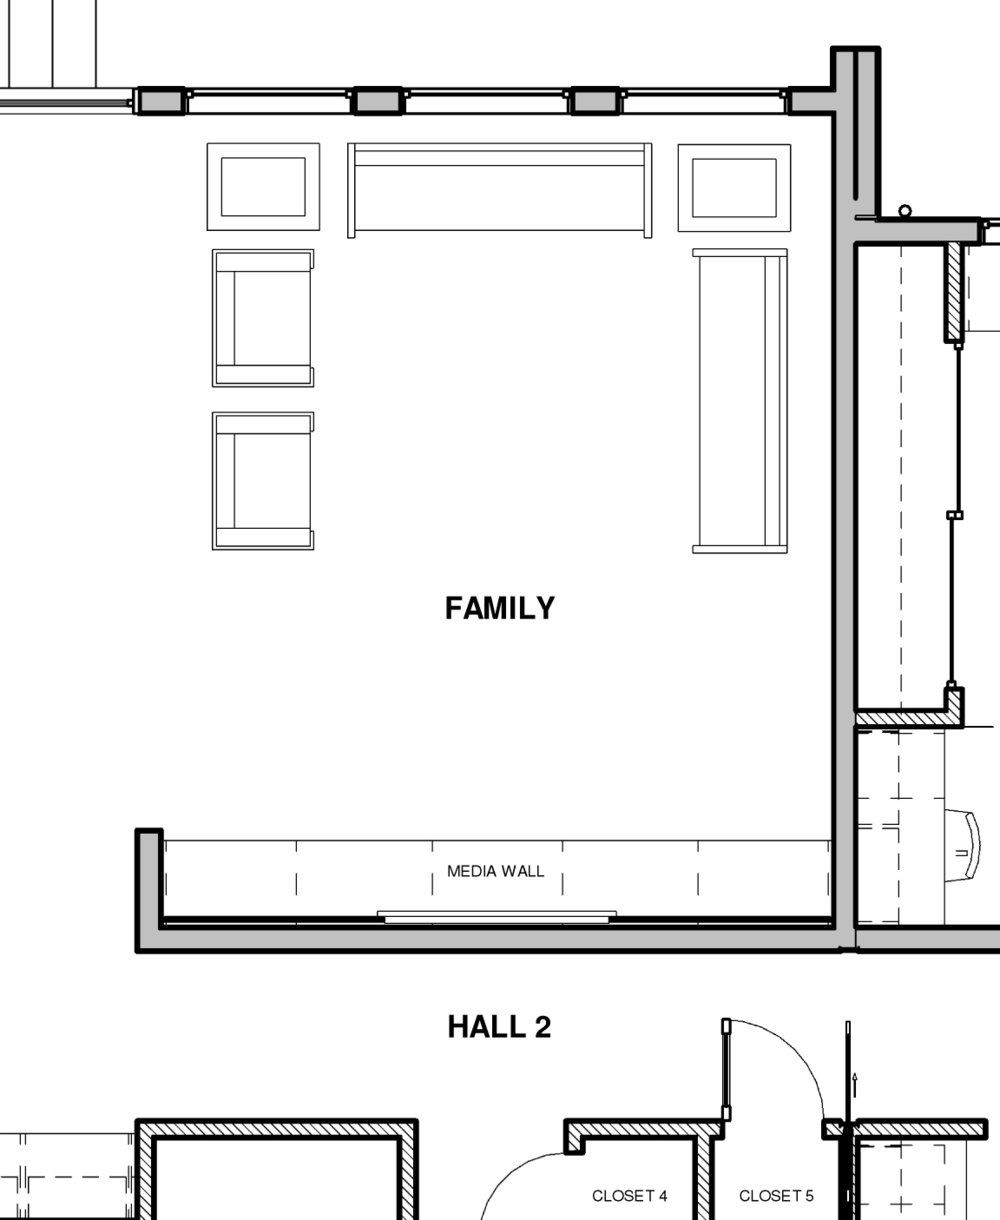 Floor Plan - Media Wall